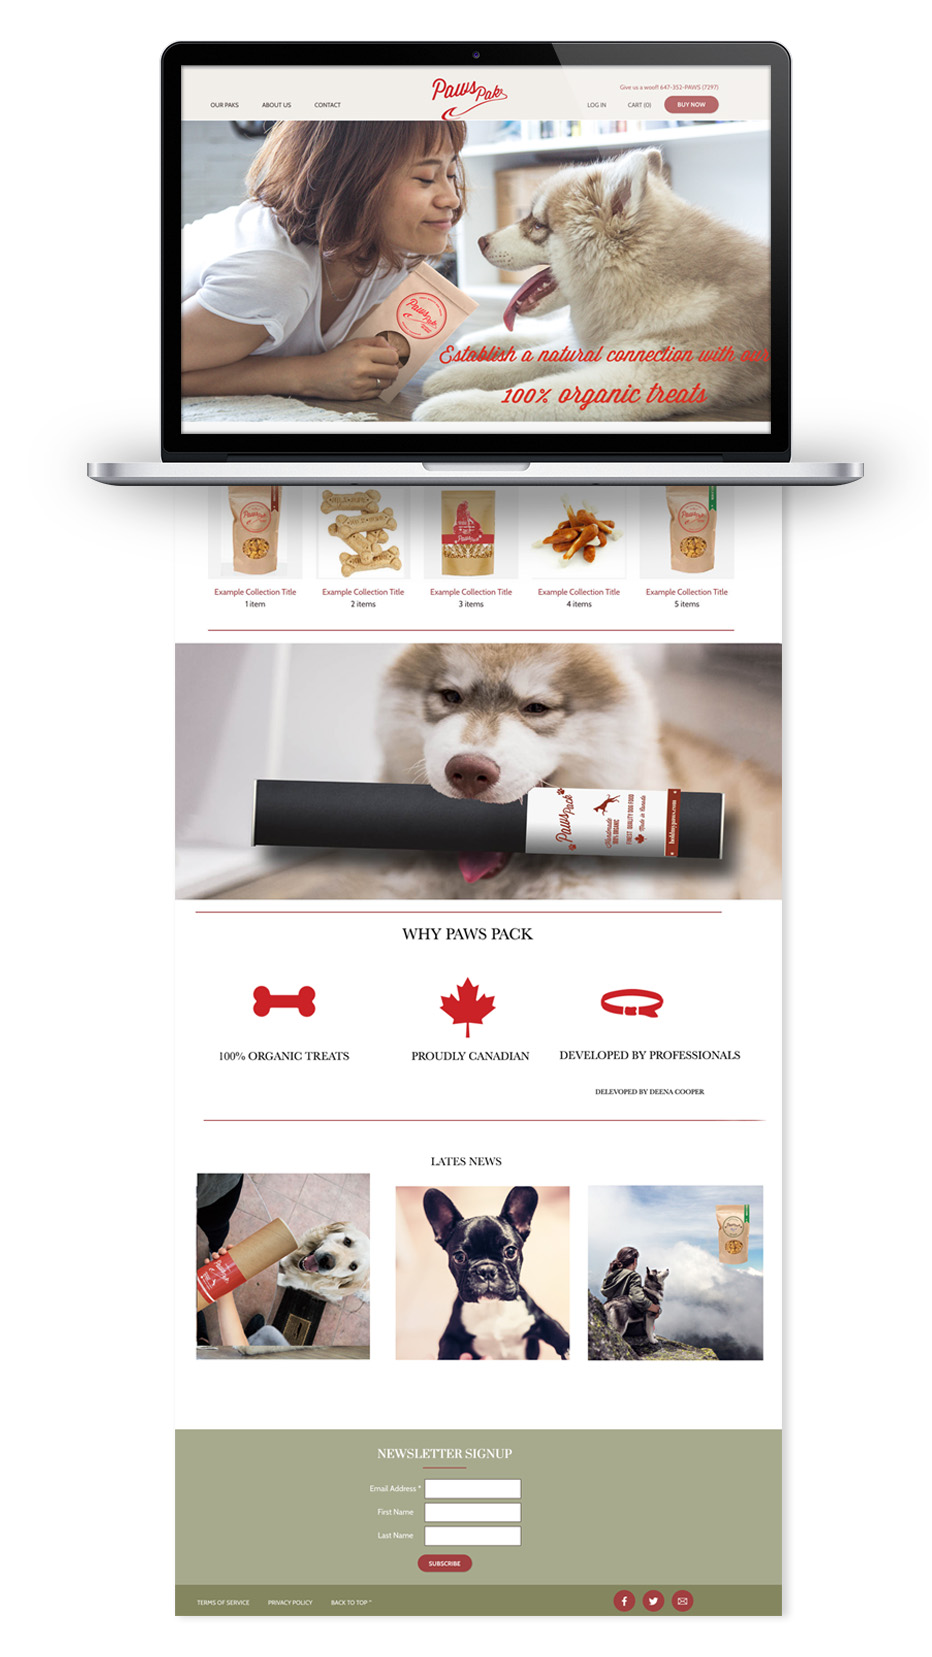 Web site design  and social media stratedy for PawsPak(hold my paws)